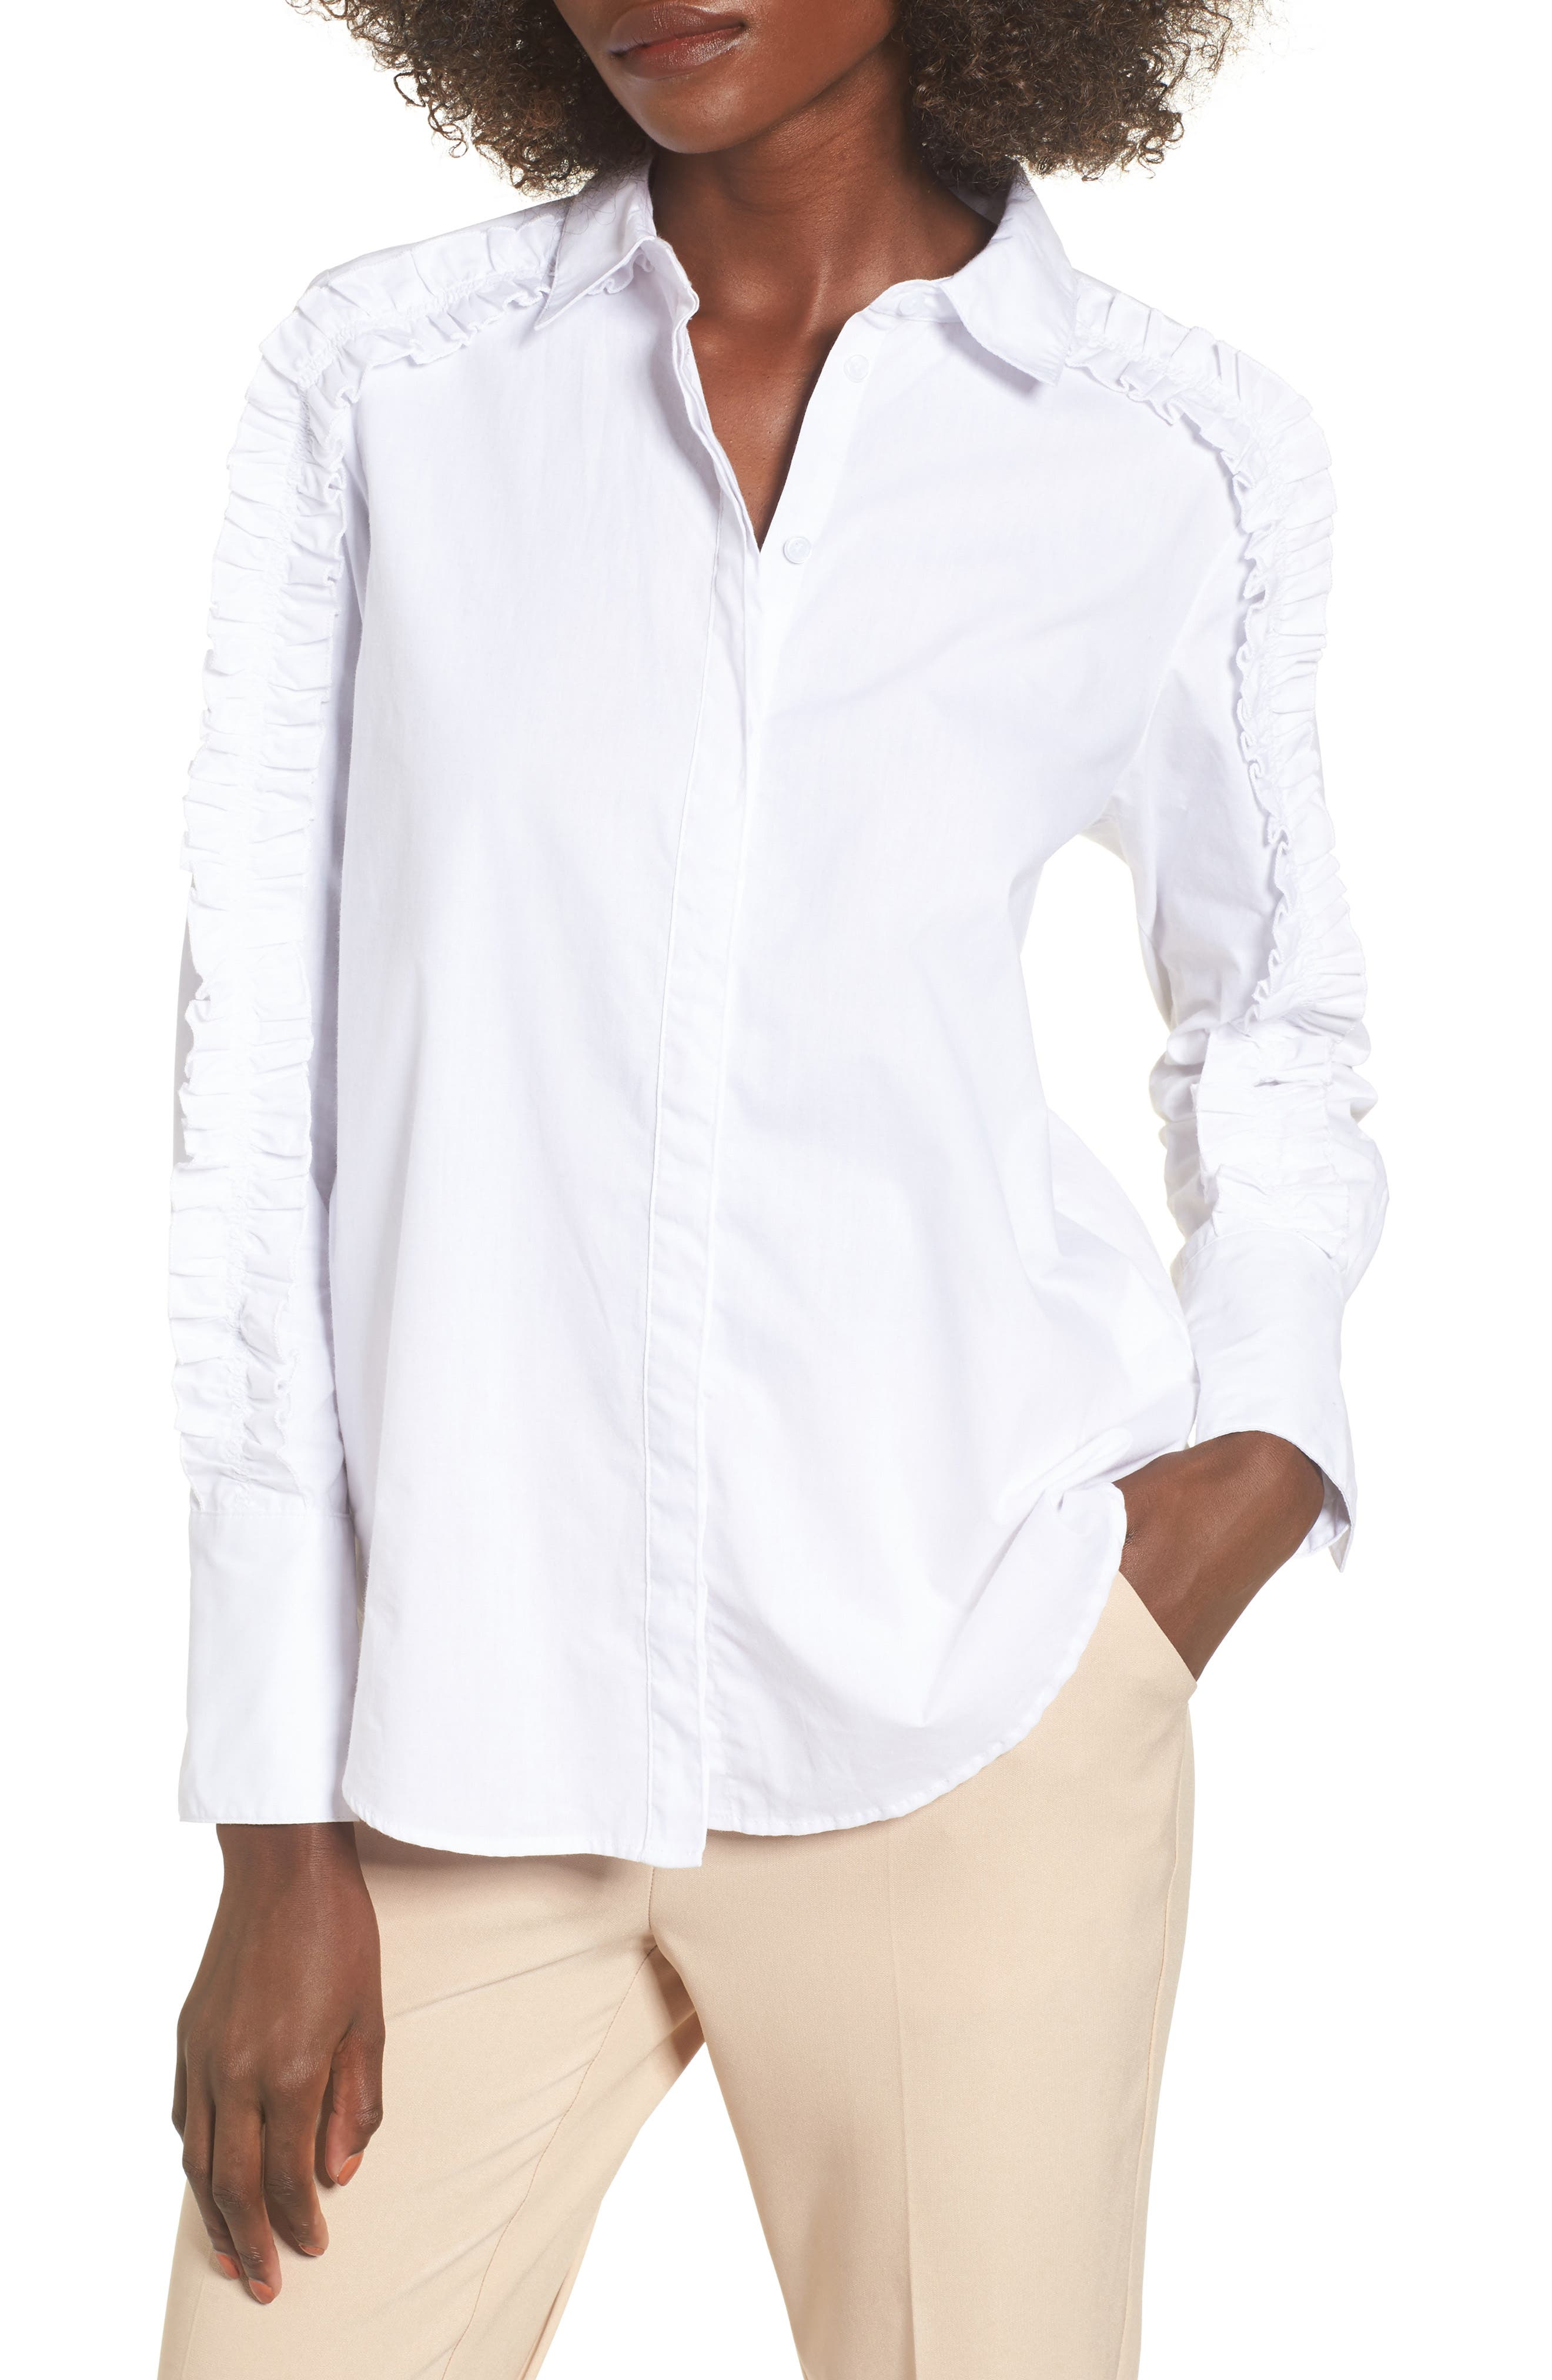 Alternate Image 1 Selected - The Fifth Label Closer Ruffle Sleeve Button Down Shirt